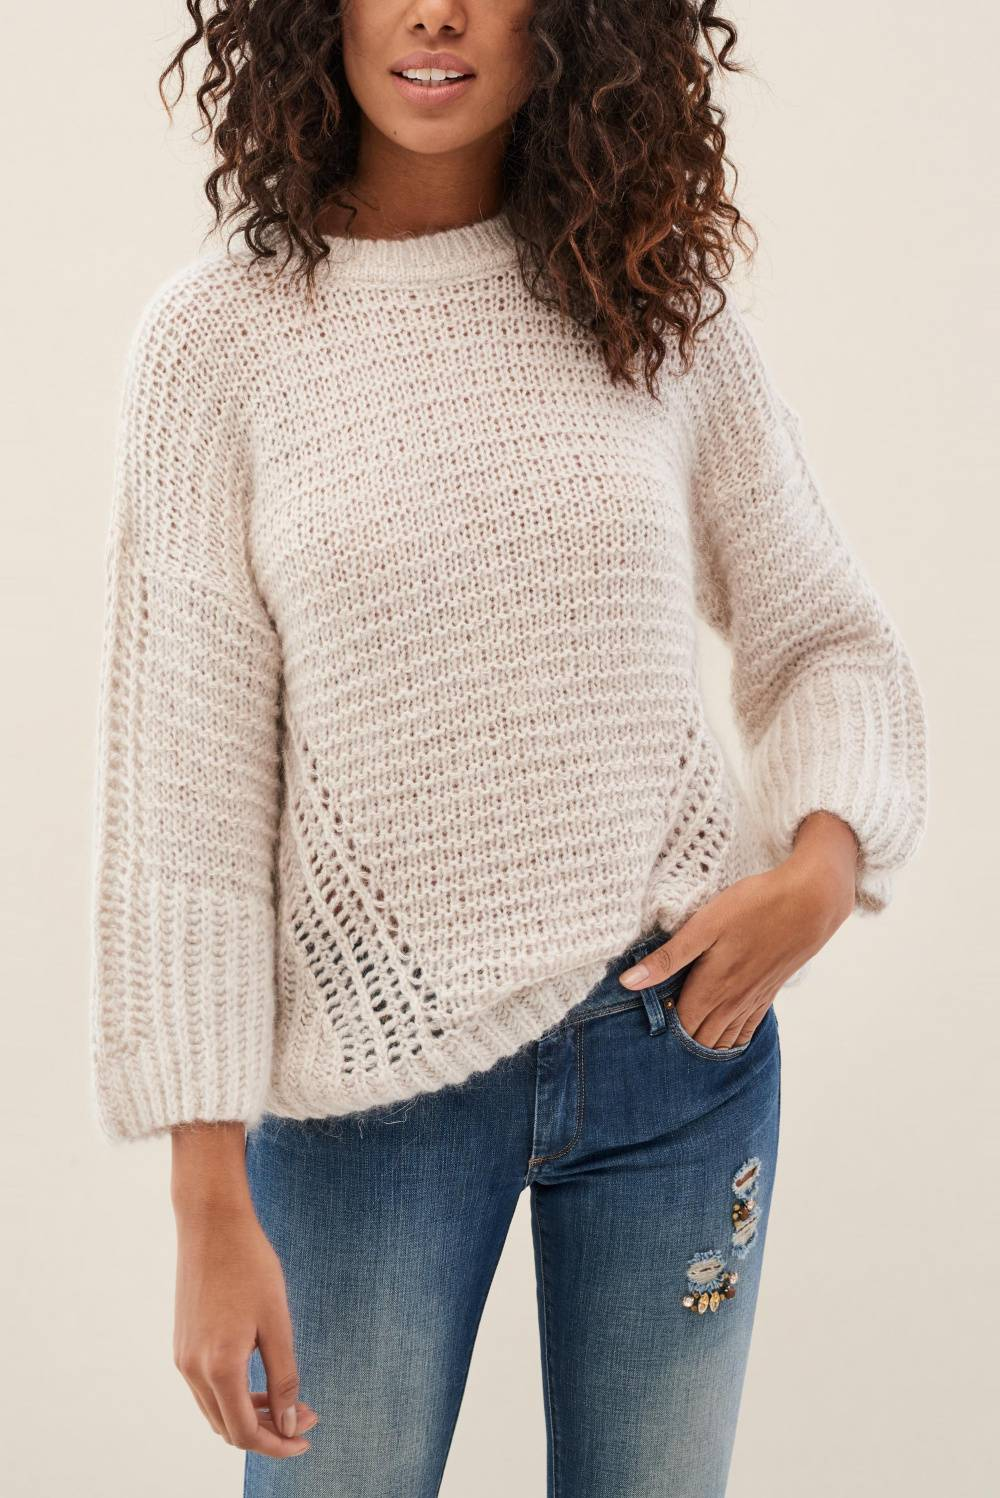 Knit jumper with wide sleeves - Salsa